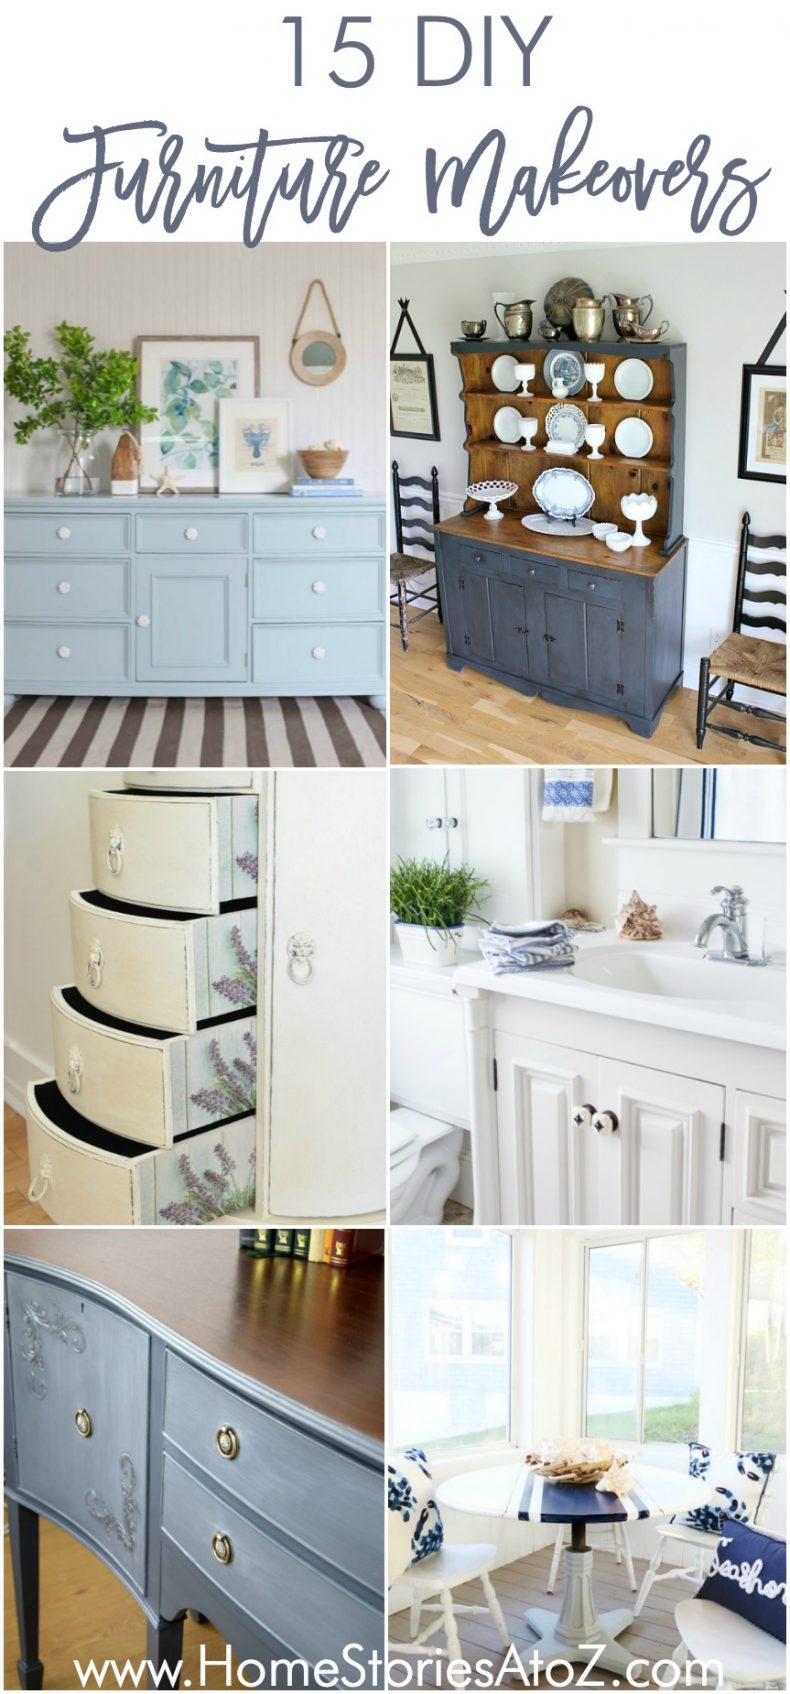 15 DIY Furniture Makeovers painted furniture